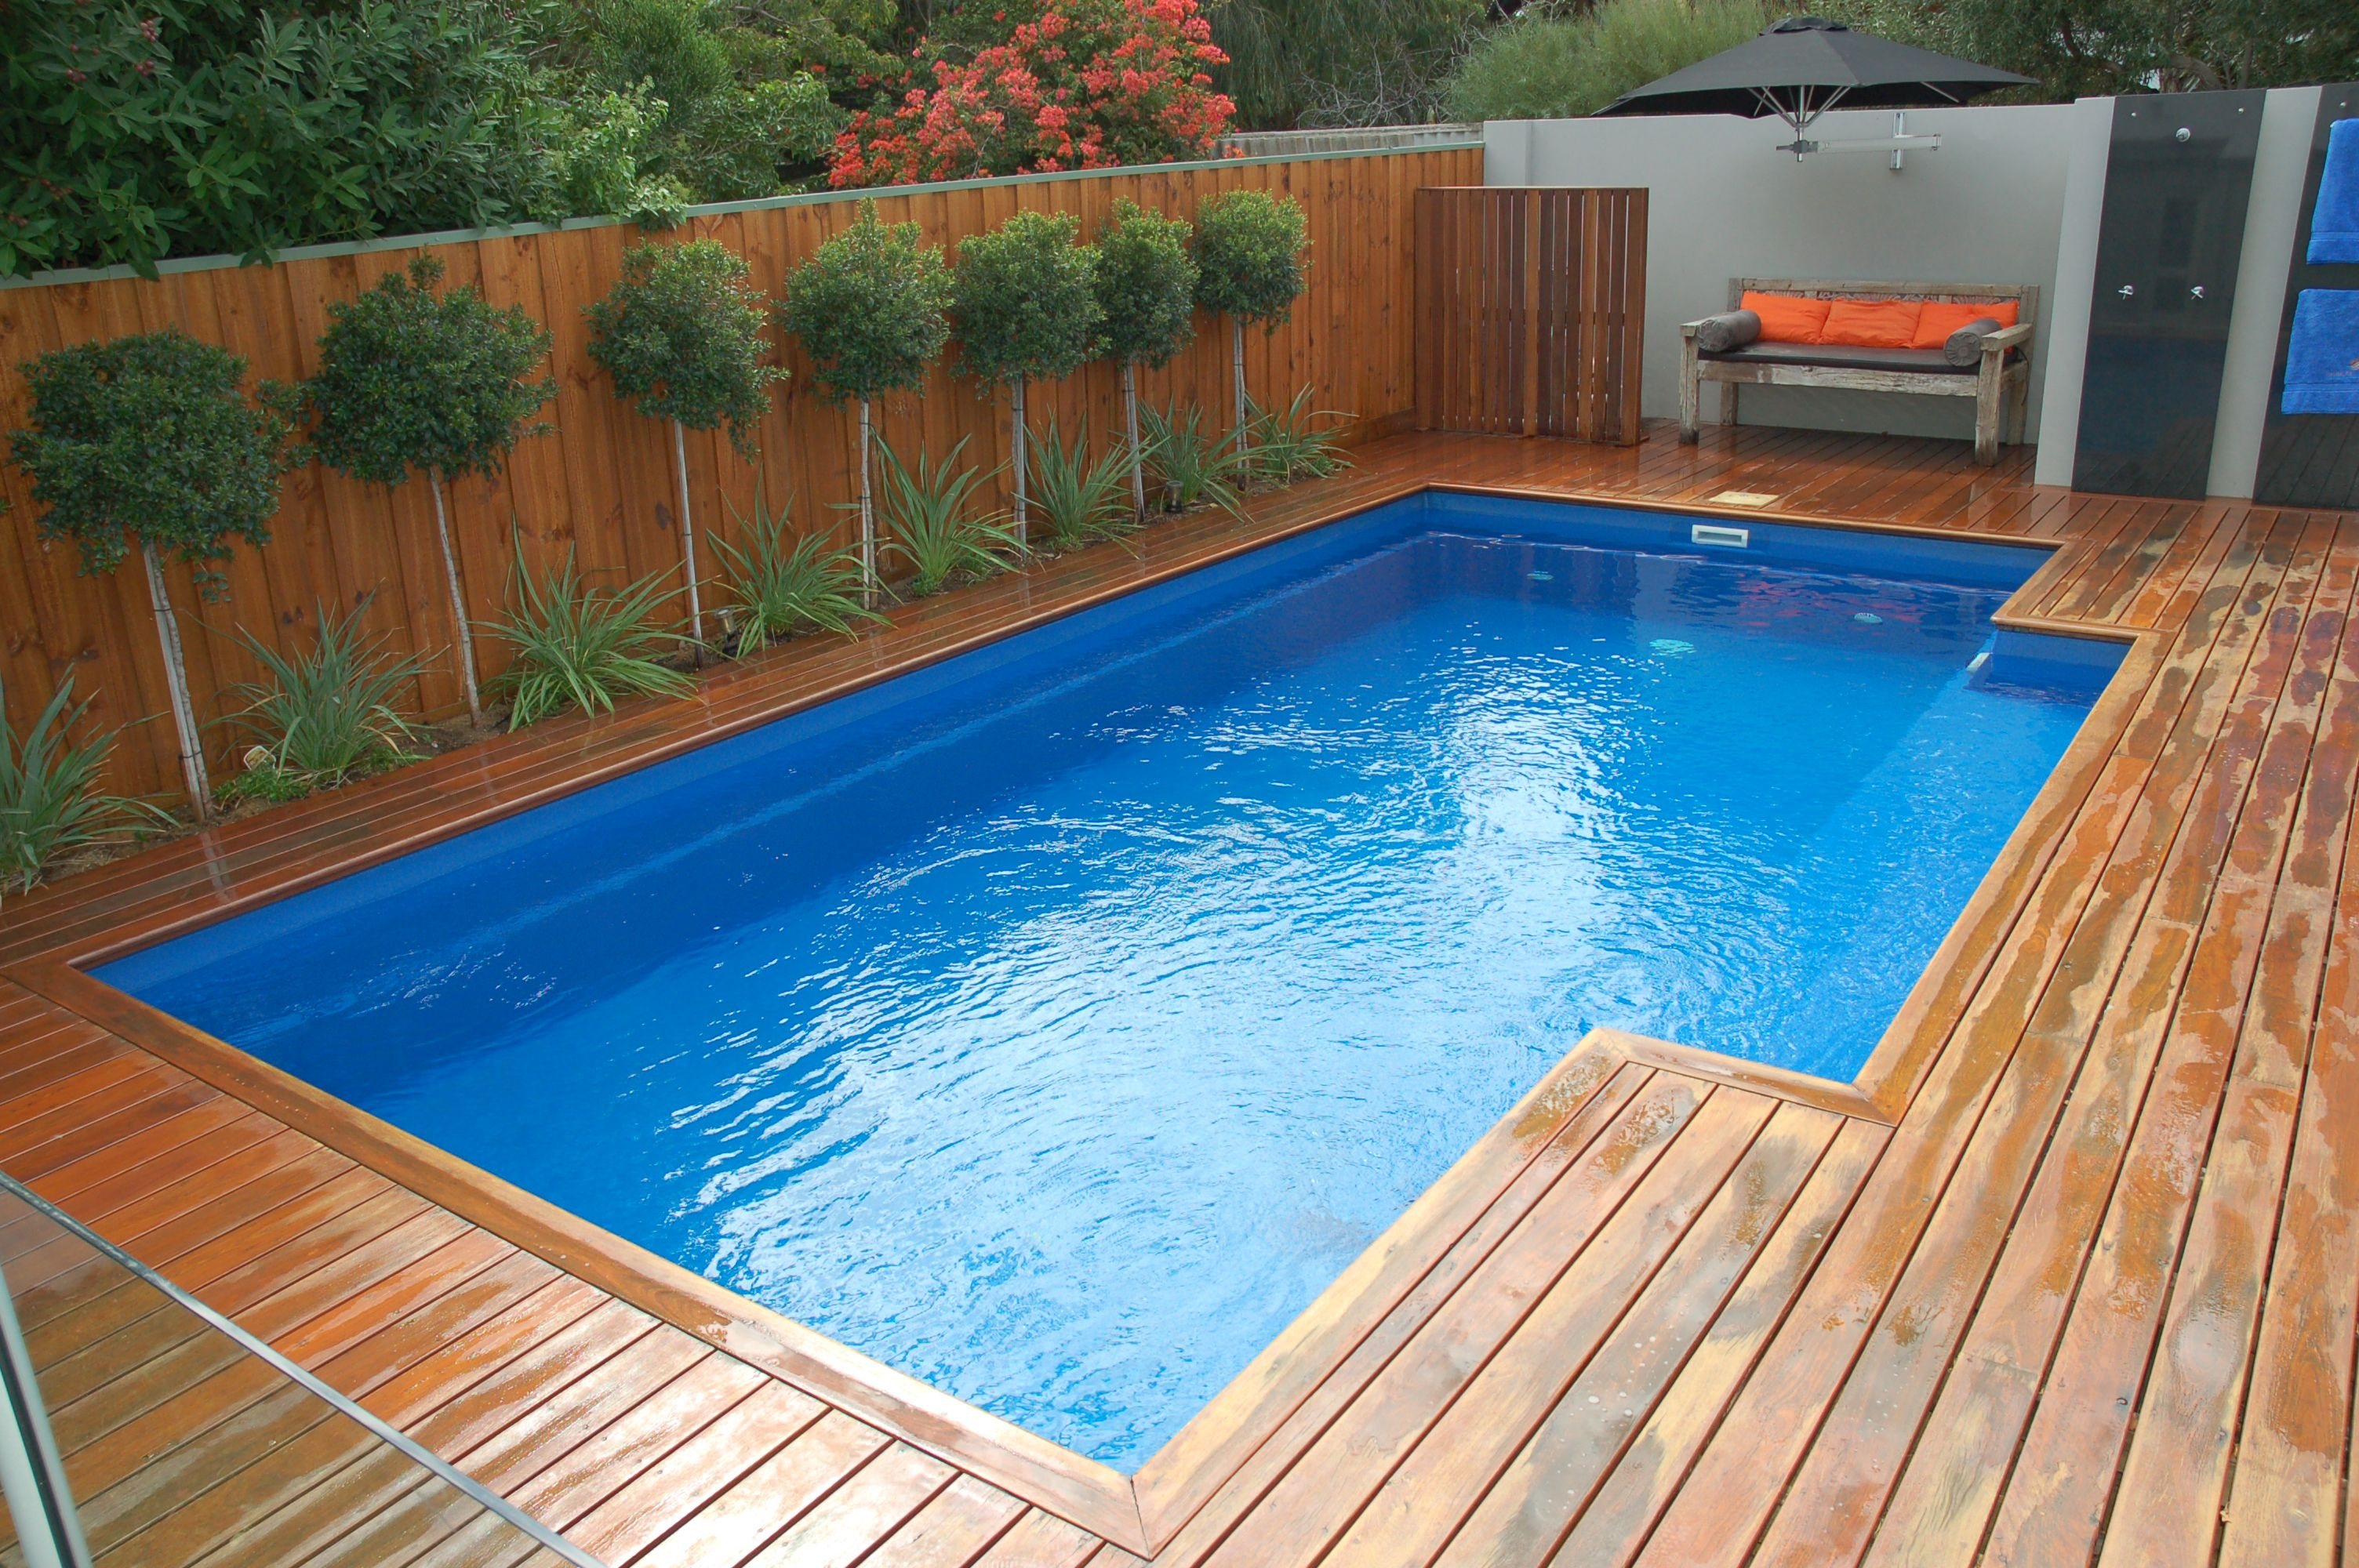 Image Result For Inground Pool Wood Deck Decks Around Pools